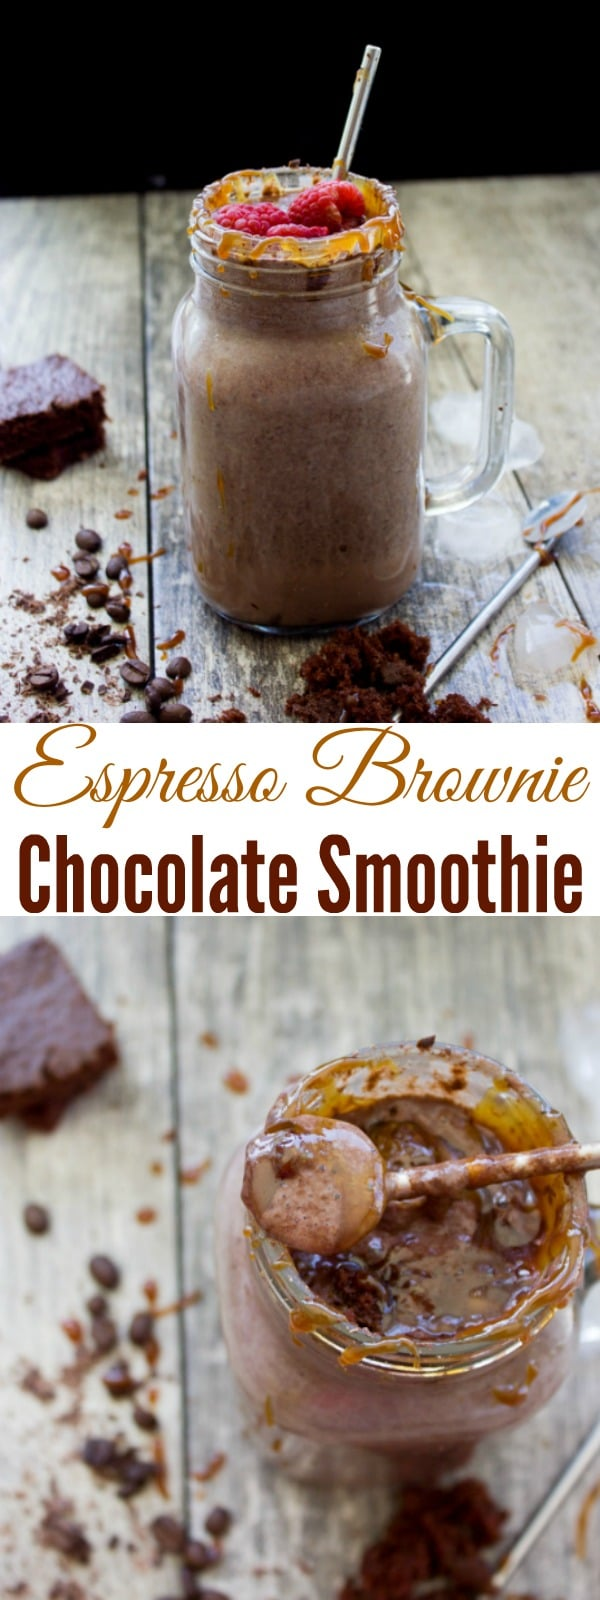 Espresso Brownie Chocolate Smoothie | A creamy caffein-spiked smoothie made with fresh espresso, crumbled brownies, dates, cocoa powder and a splash of milk. Kids and adults alike will be all over this chocolatey summer treat. #easy, #coffee, #dessert, #breakfast, #brownie, #smoothie